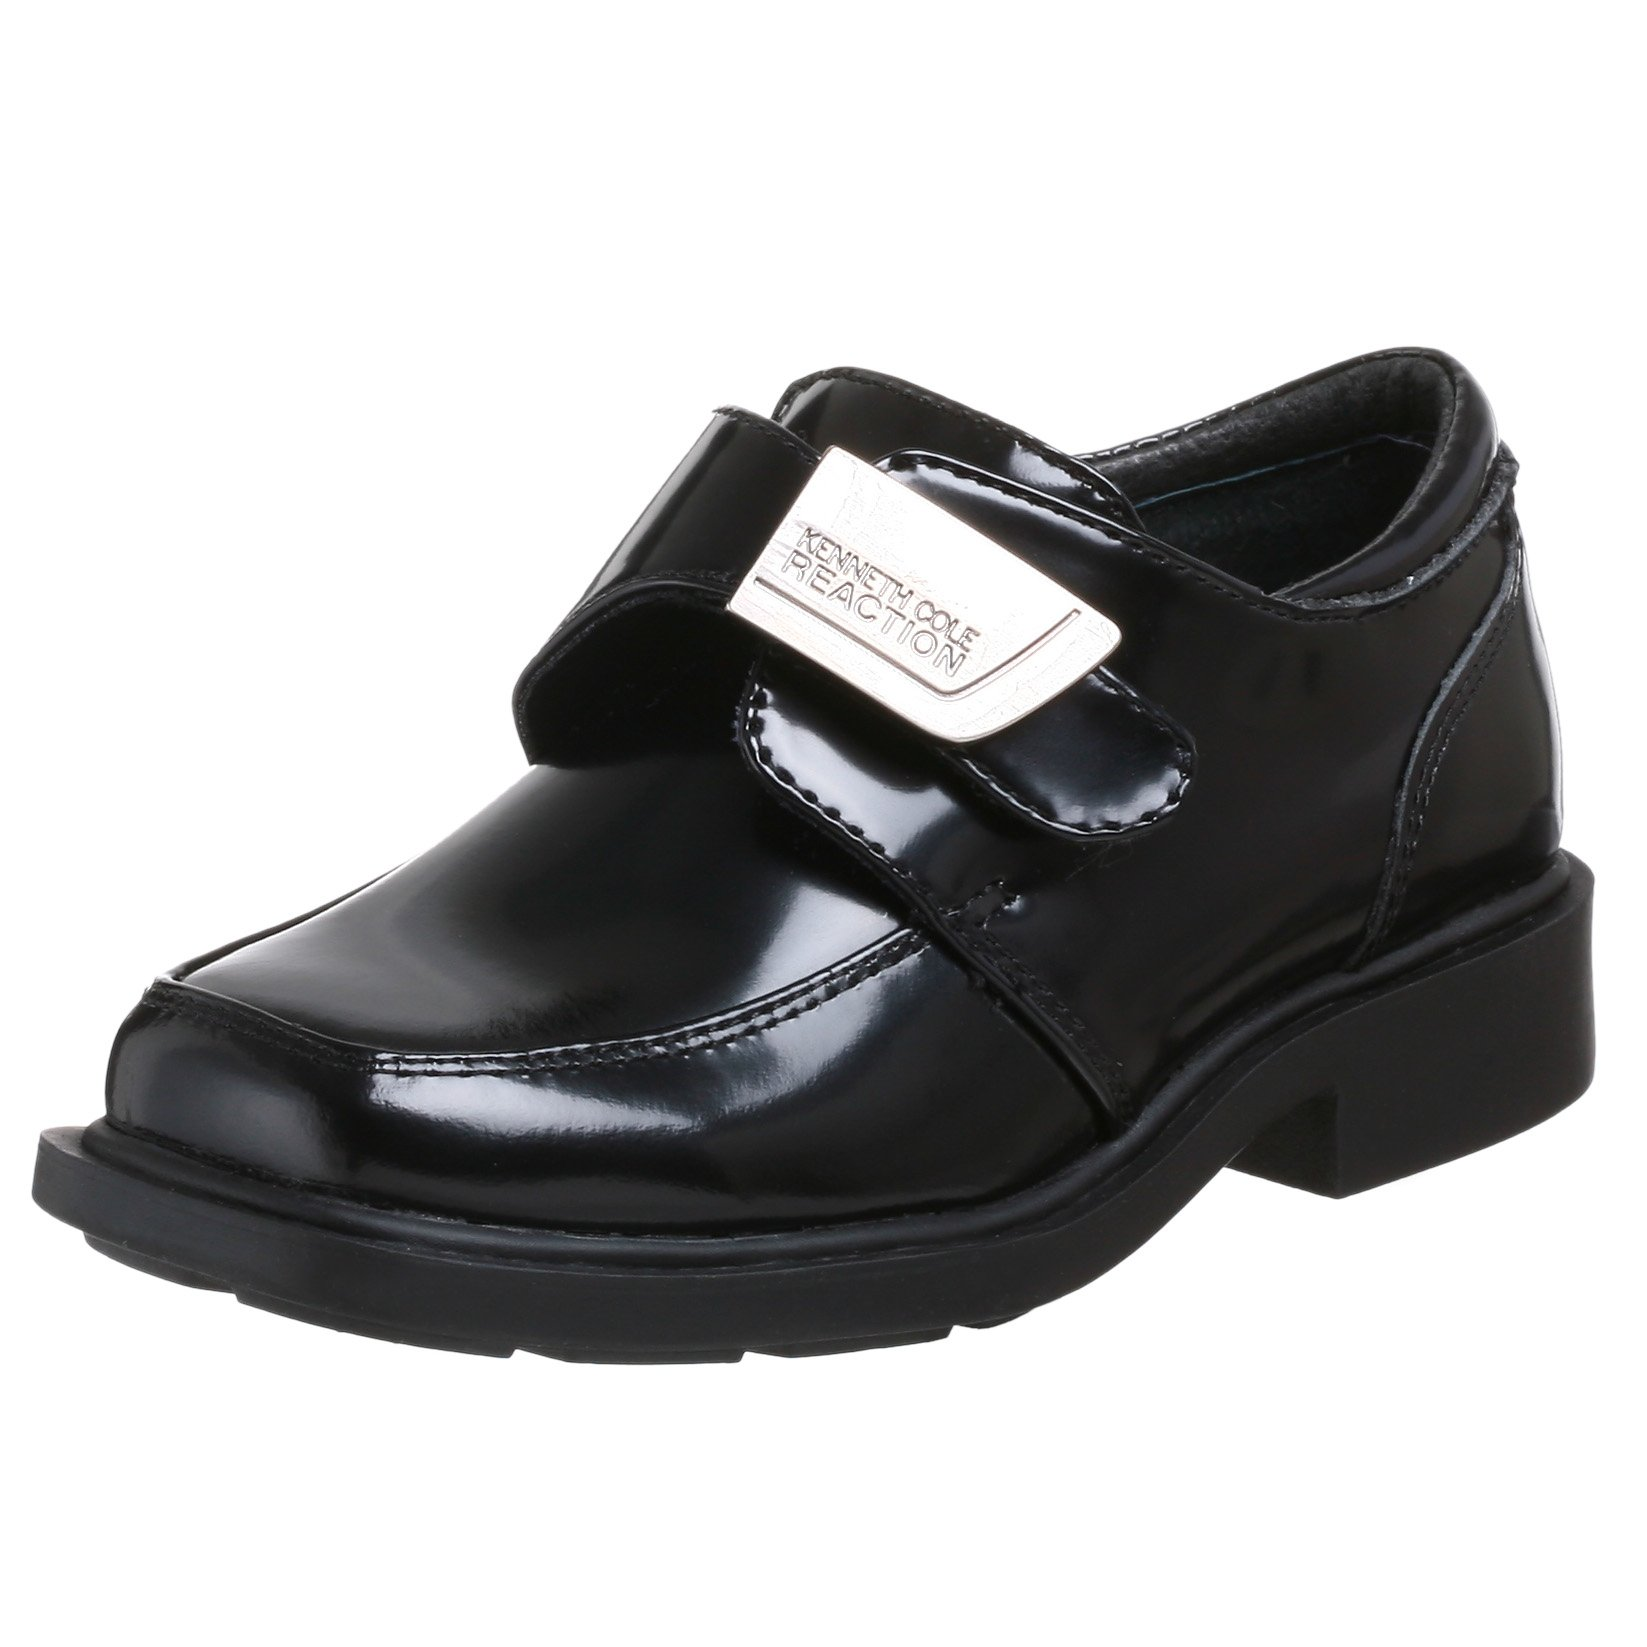 Kenneth Cole REACTION Fast Cash 2 Loafer (Toddler/Little Kid),Black,11 M US Little Kid